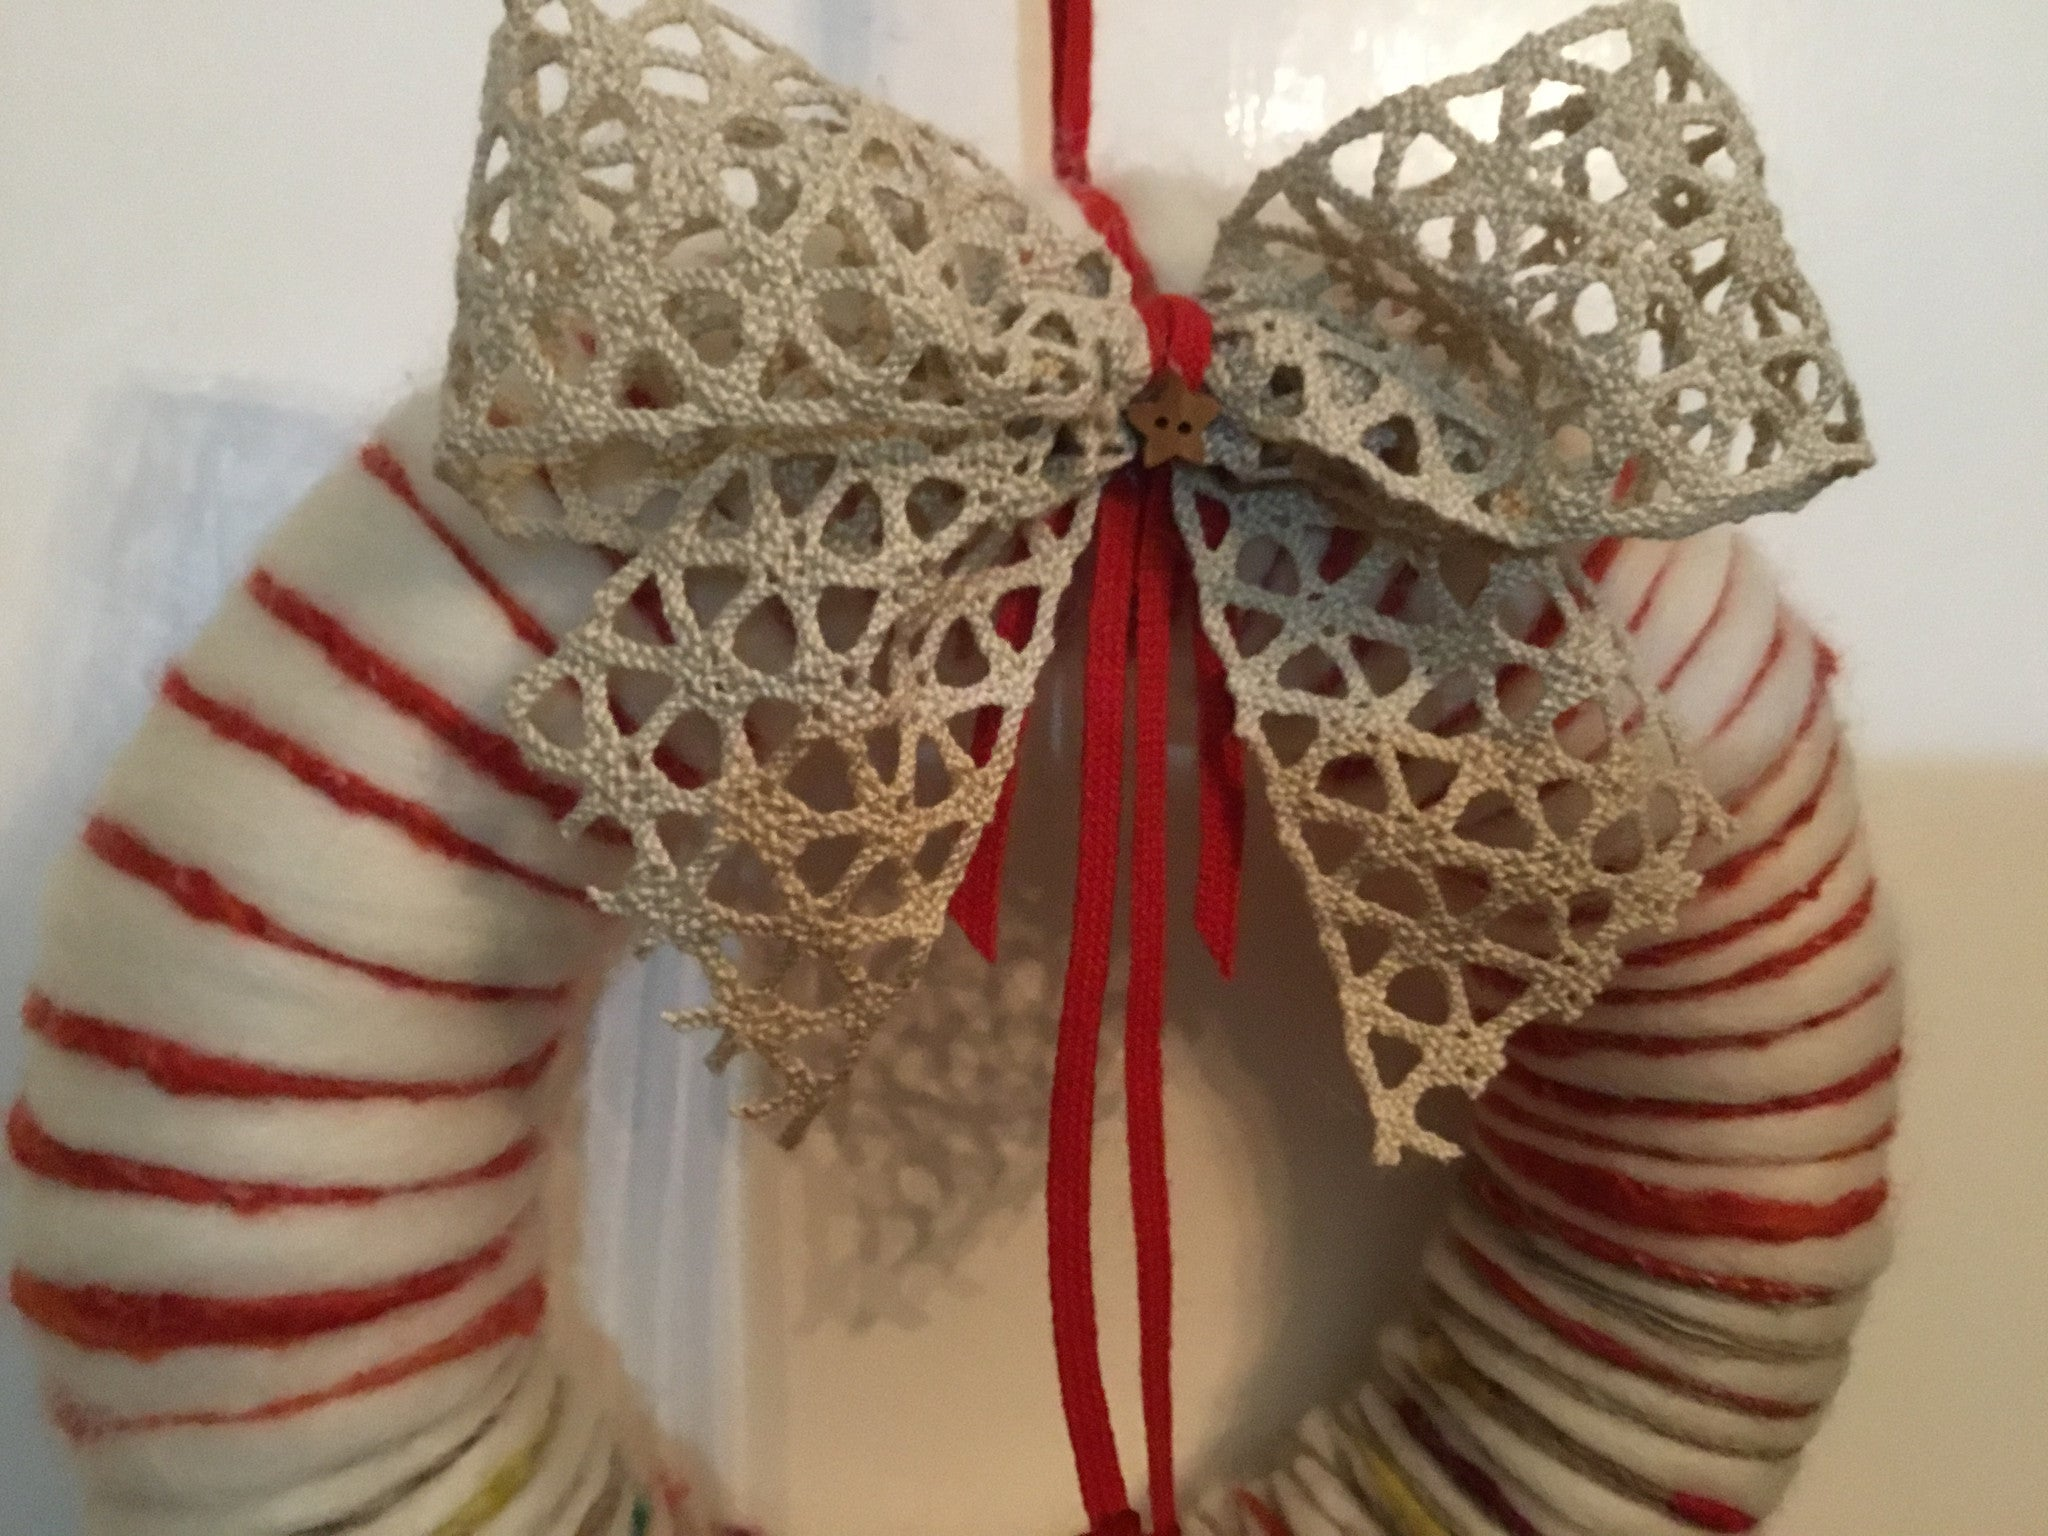 Make Your Own Christmas Decorations: Yarn Wrapped Wreath